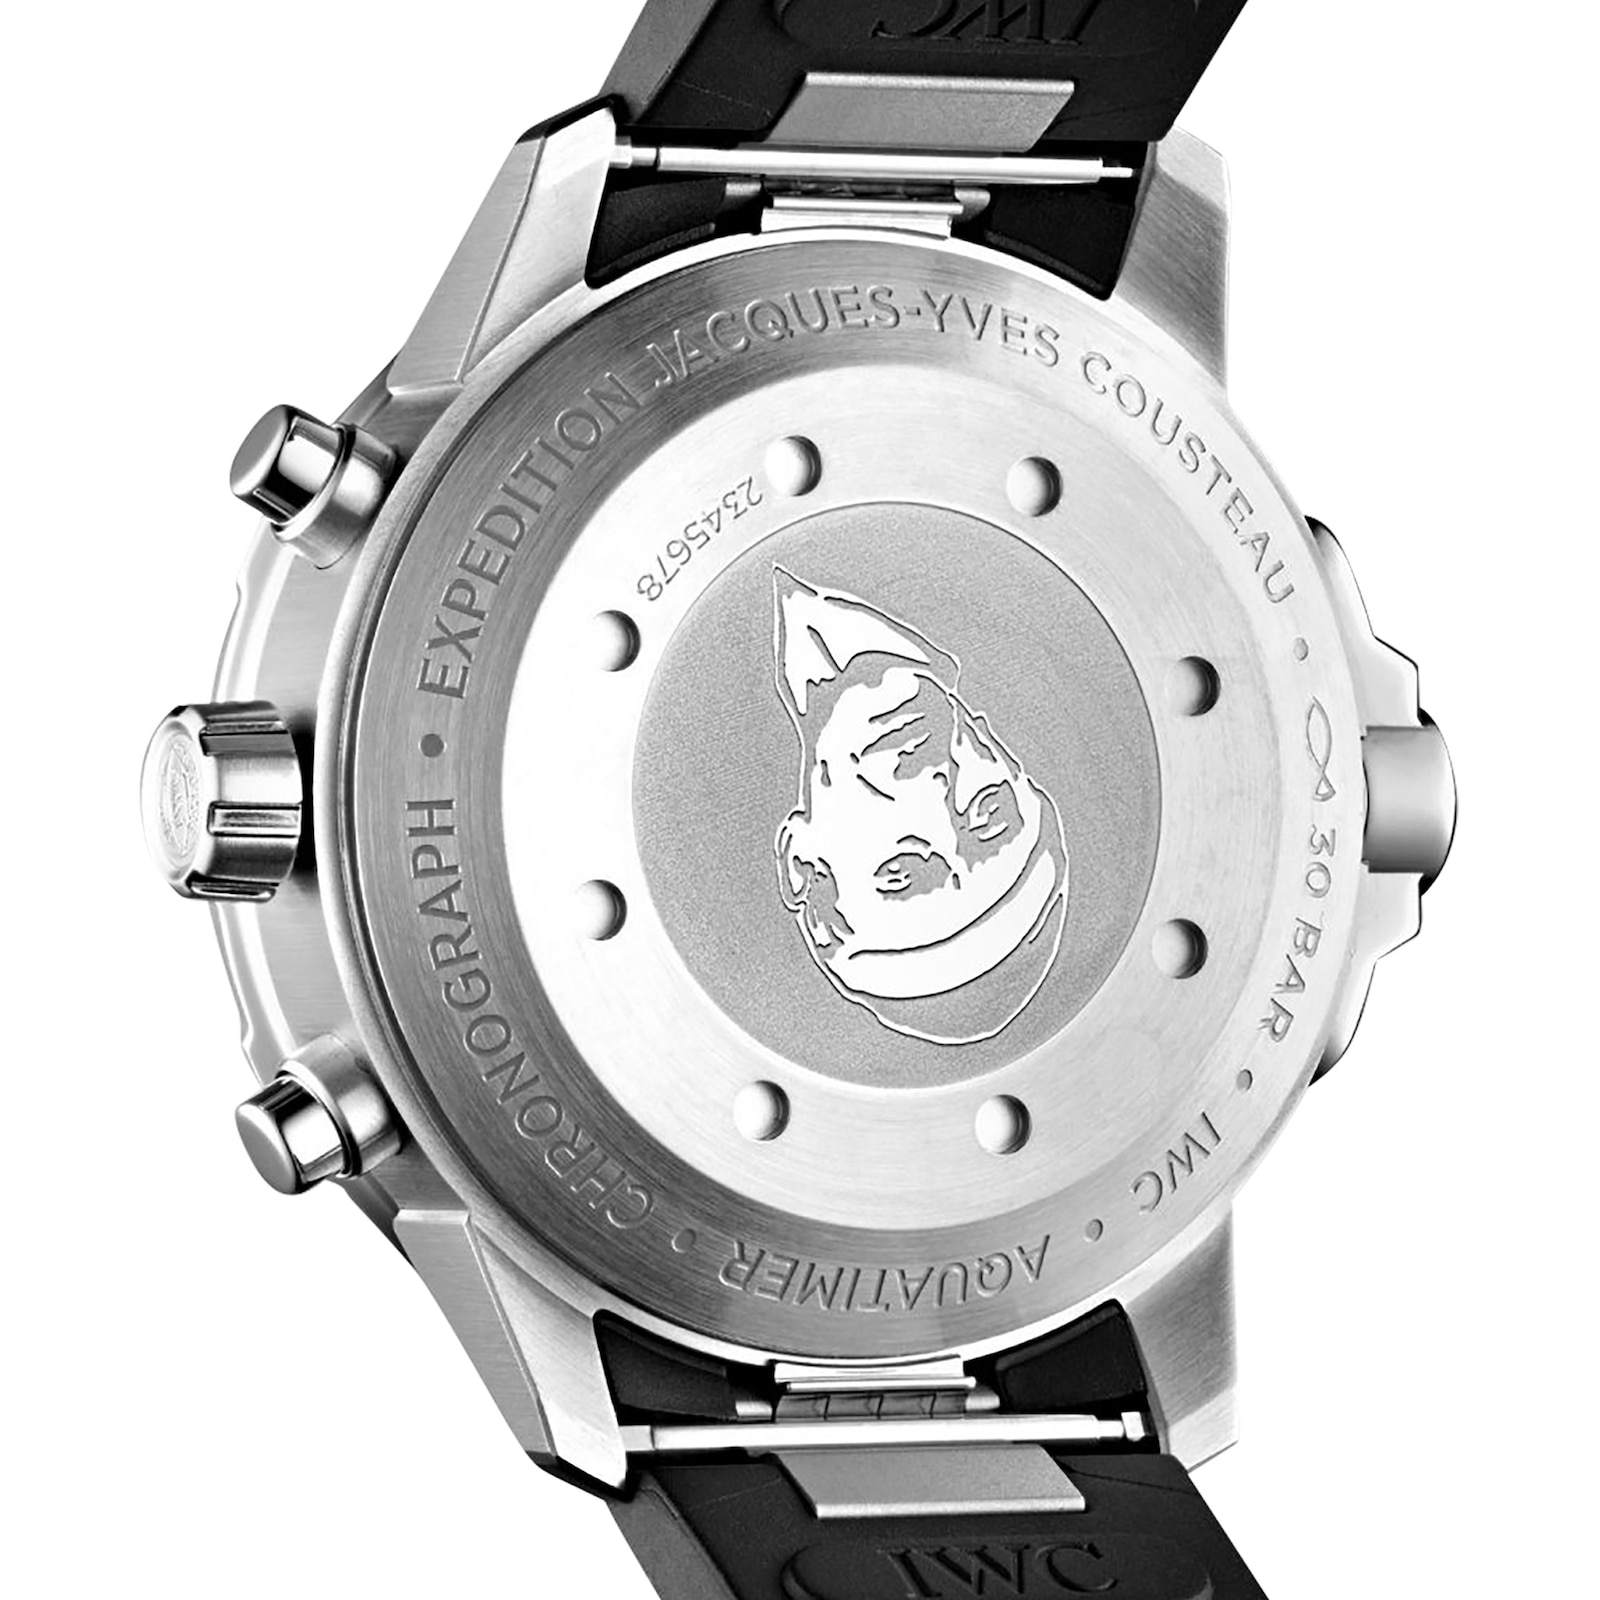 IWC Aquatimer Chronograph Edition 'Jacques-Yves Cousteau' Mens Watch